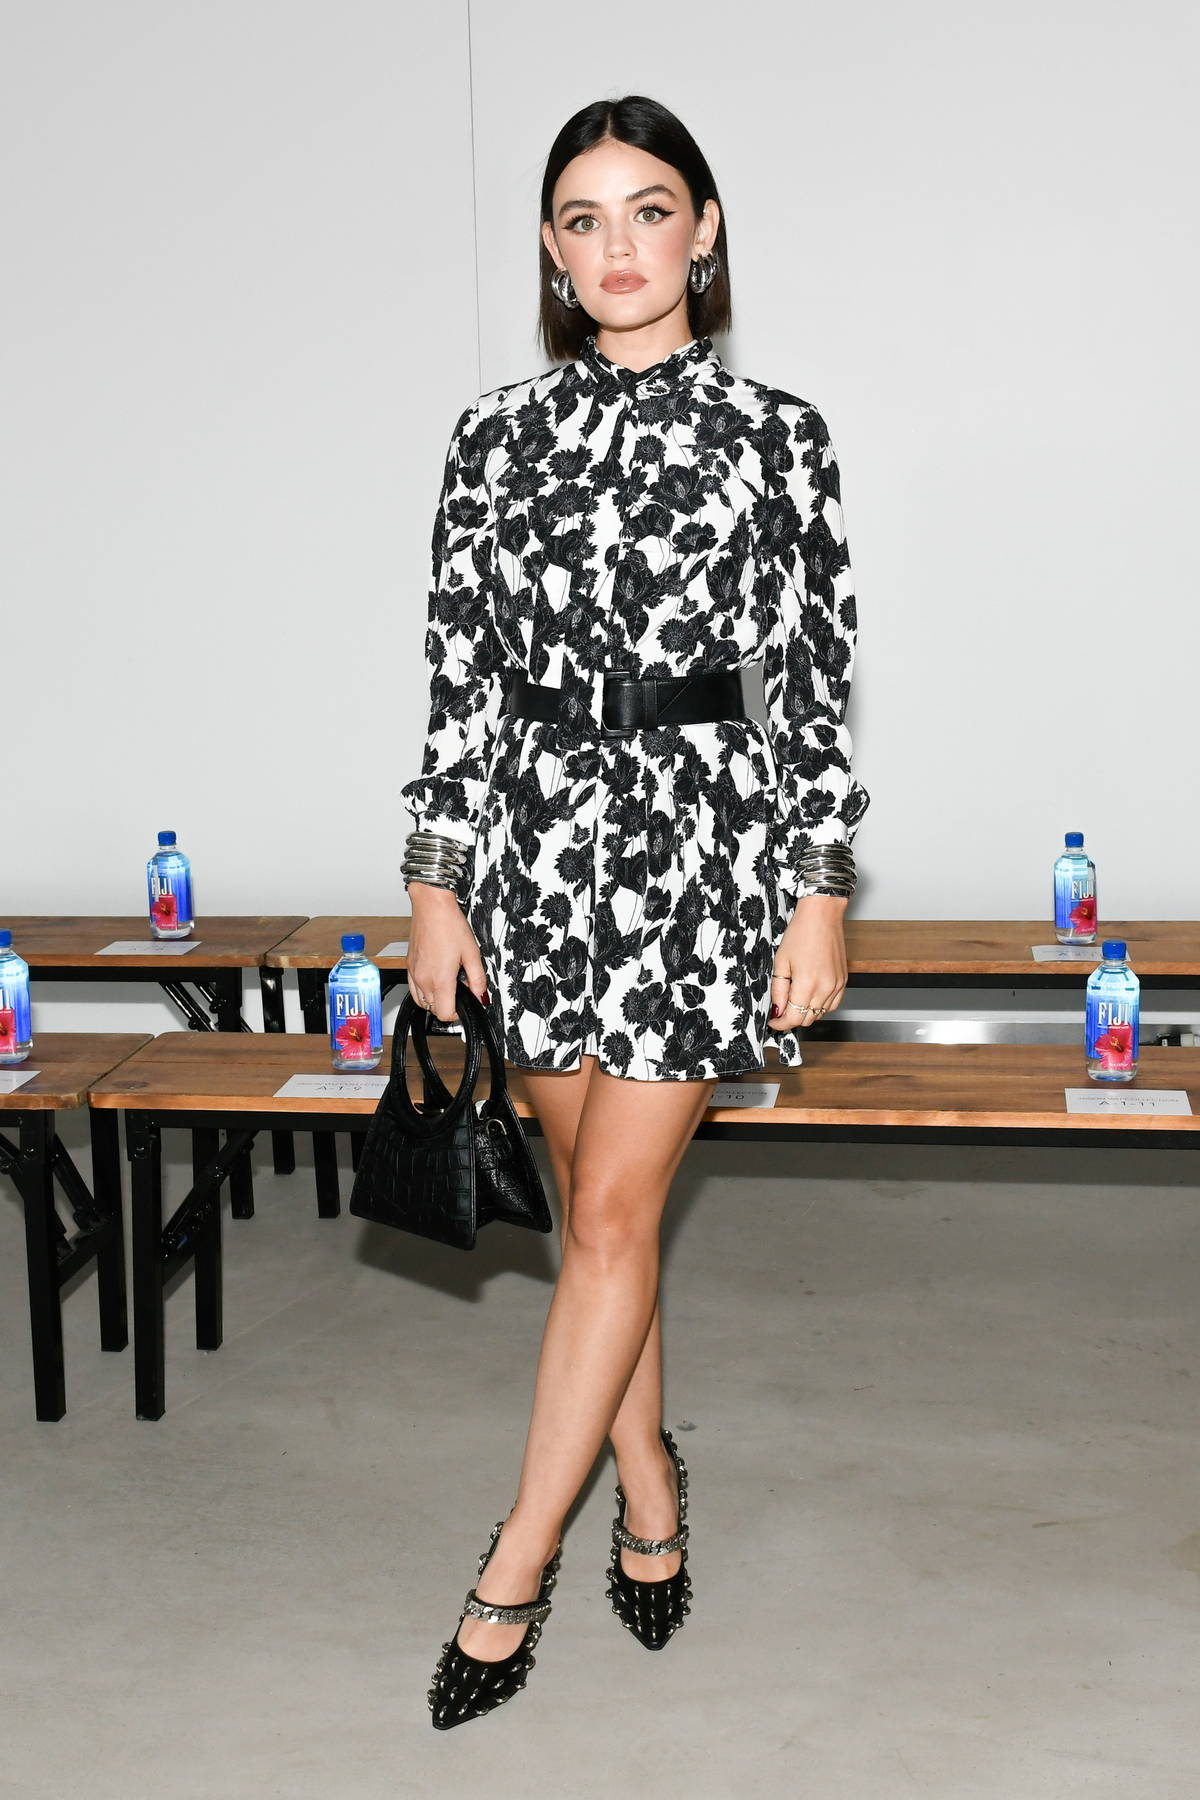 Lucy Hale attends the Jason Wu SS22 fashion show during New York Fashion Week in New York City